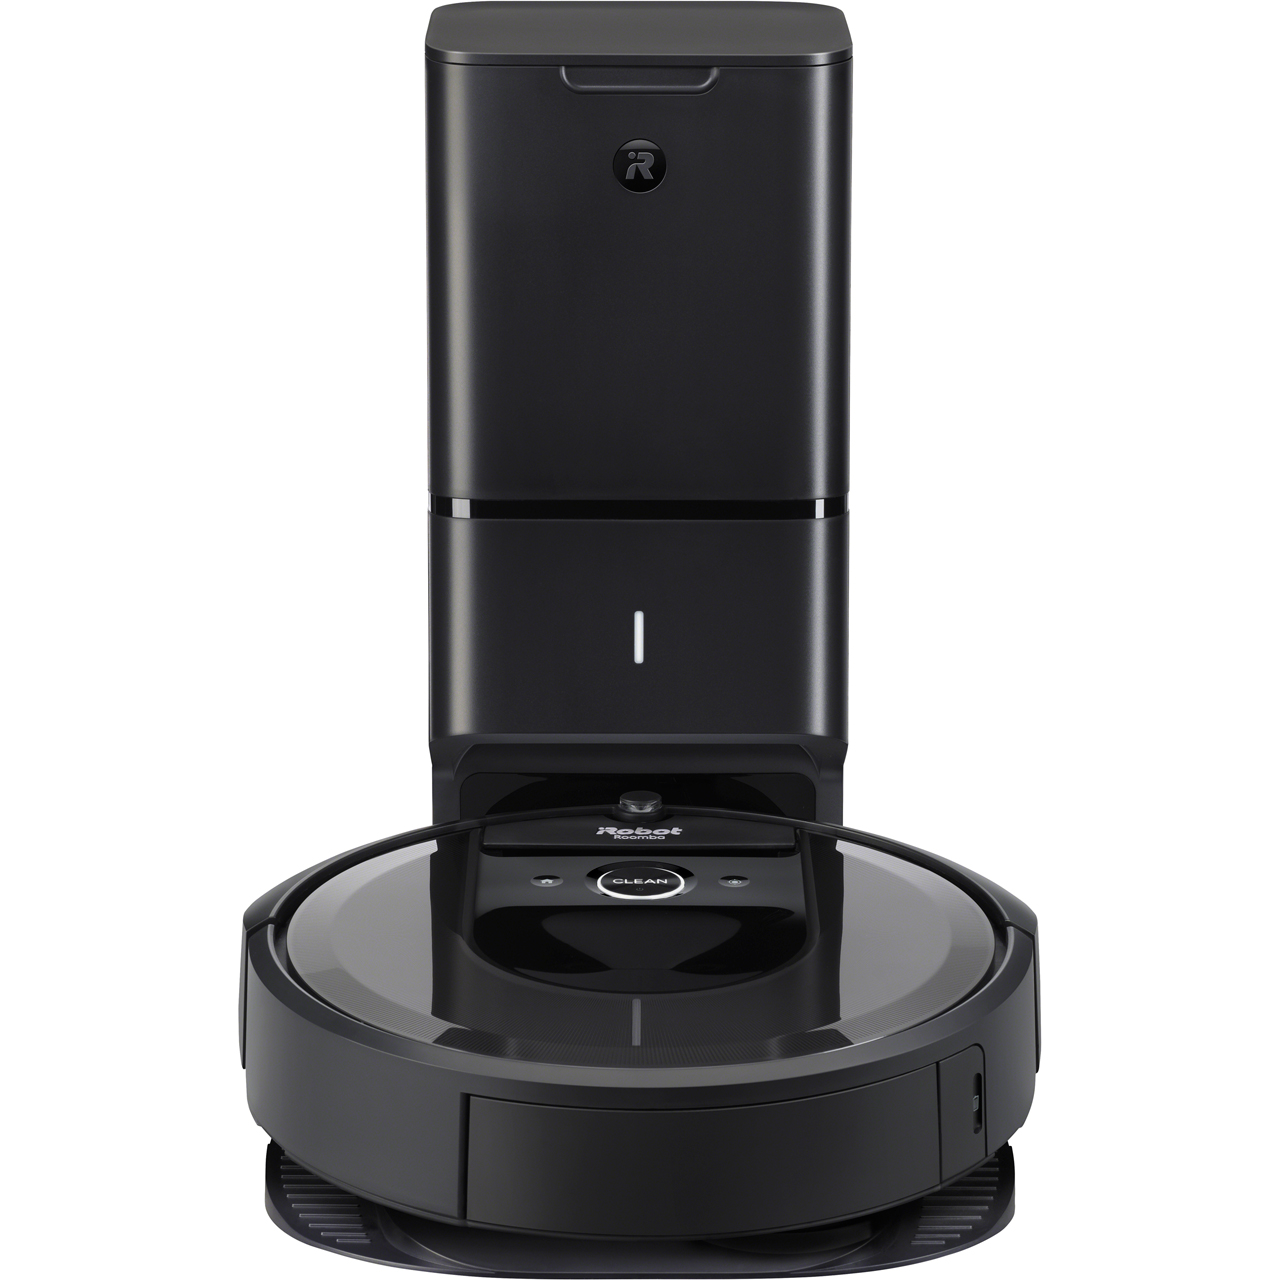 iRobot Roomba I7558+ Bagless Robotic Vacuum Cleaner with Auto Dirt Disposal  System - Charcoal